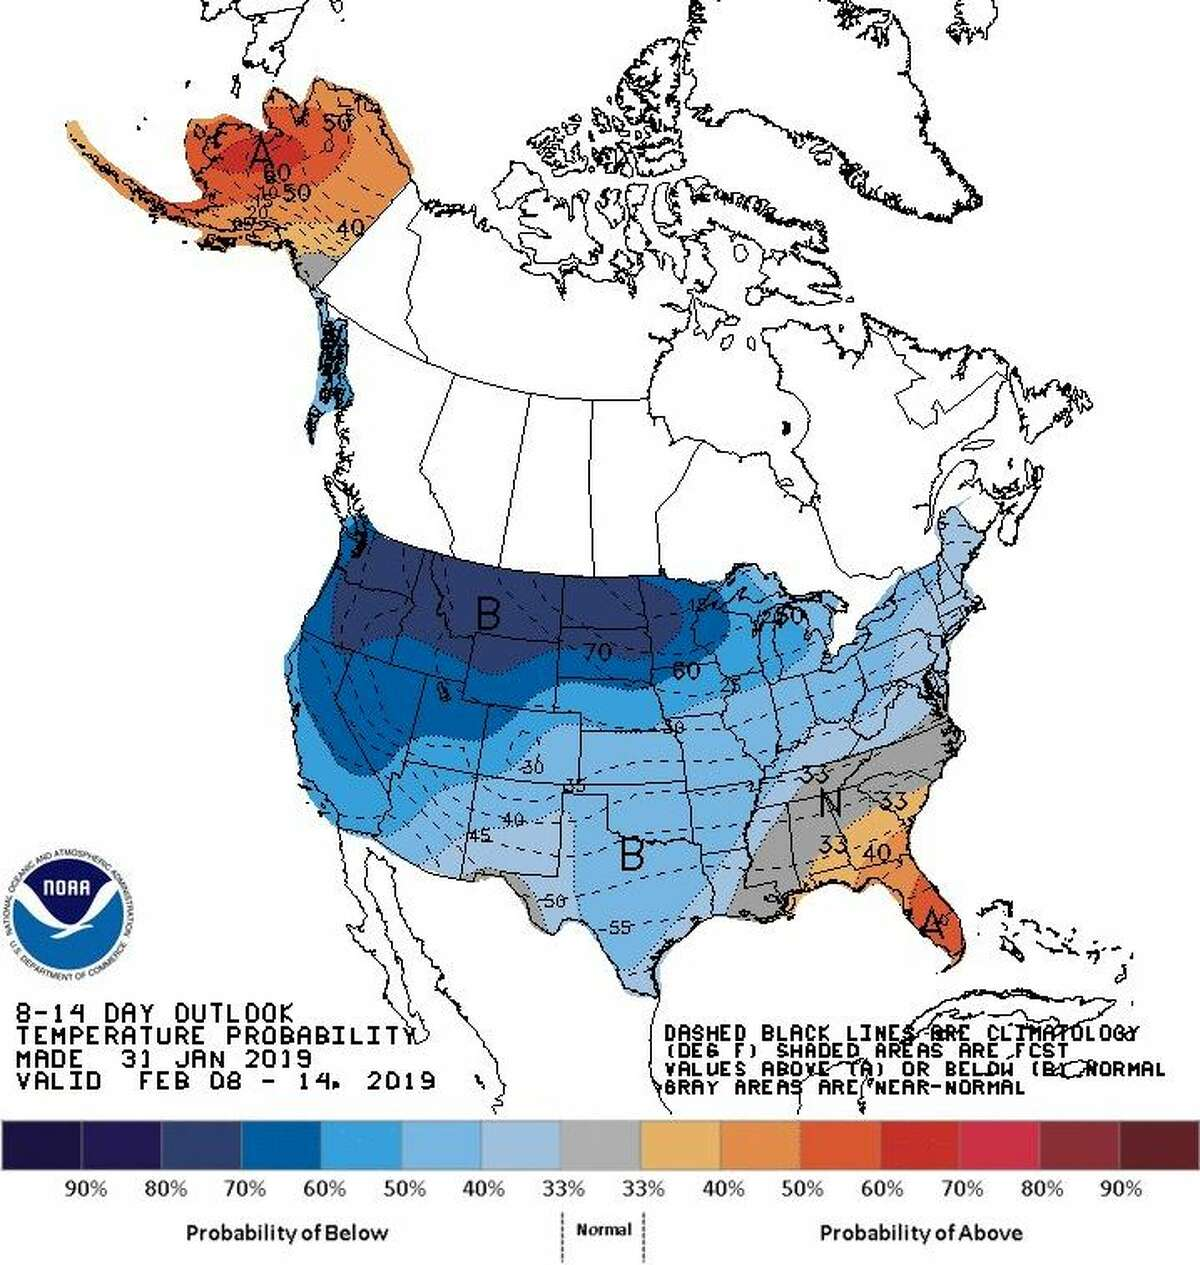 Cold weather was expected to linger through the early part of February, according to the National Weather Service.